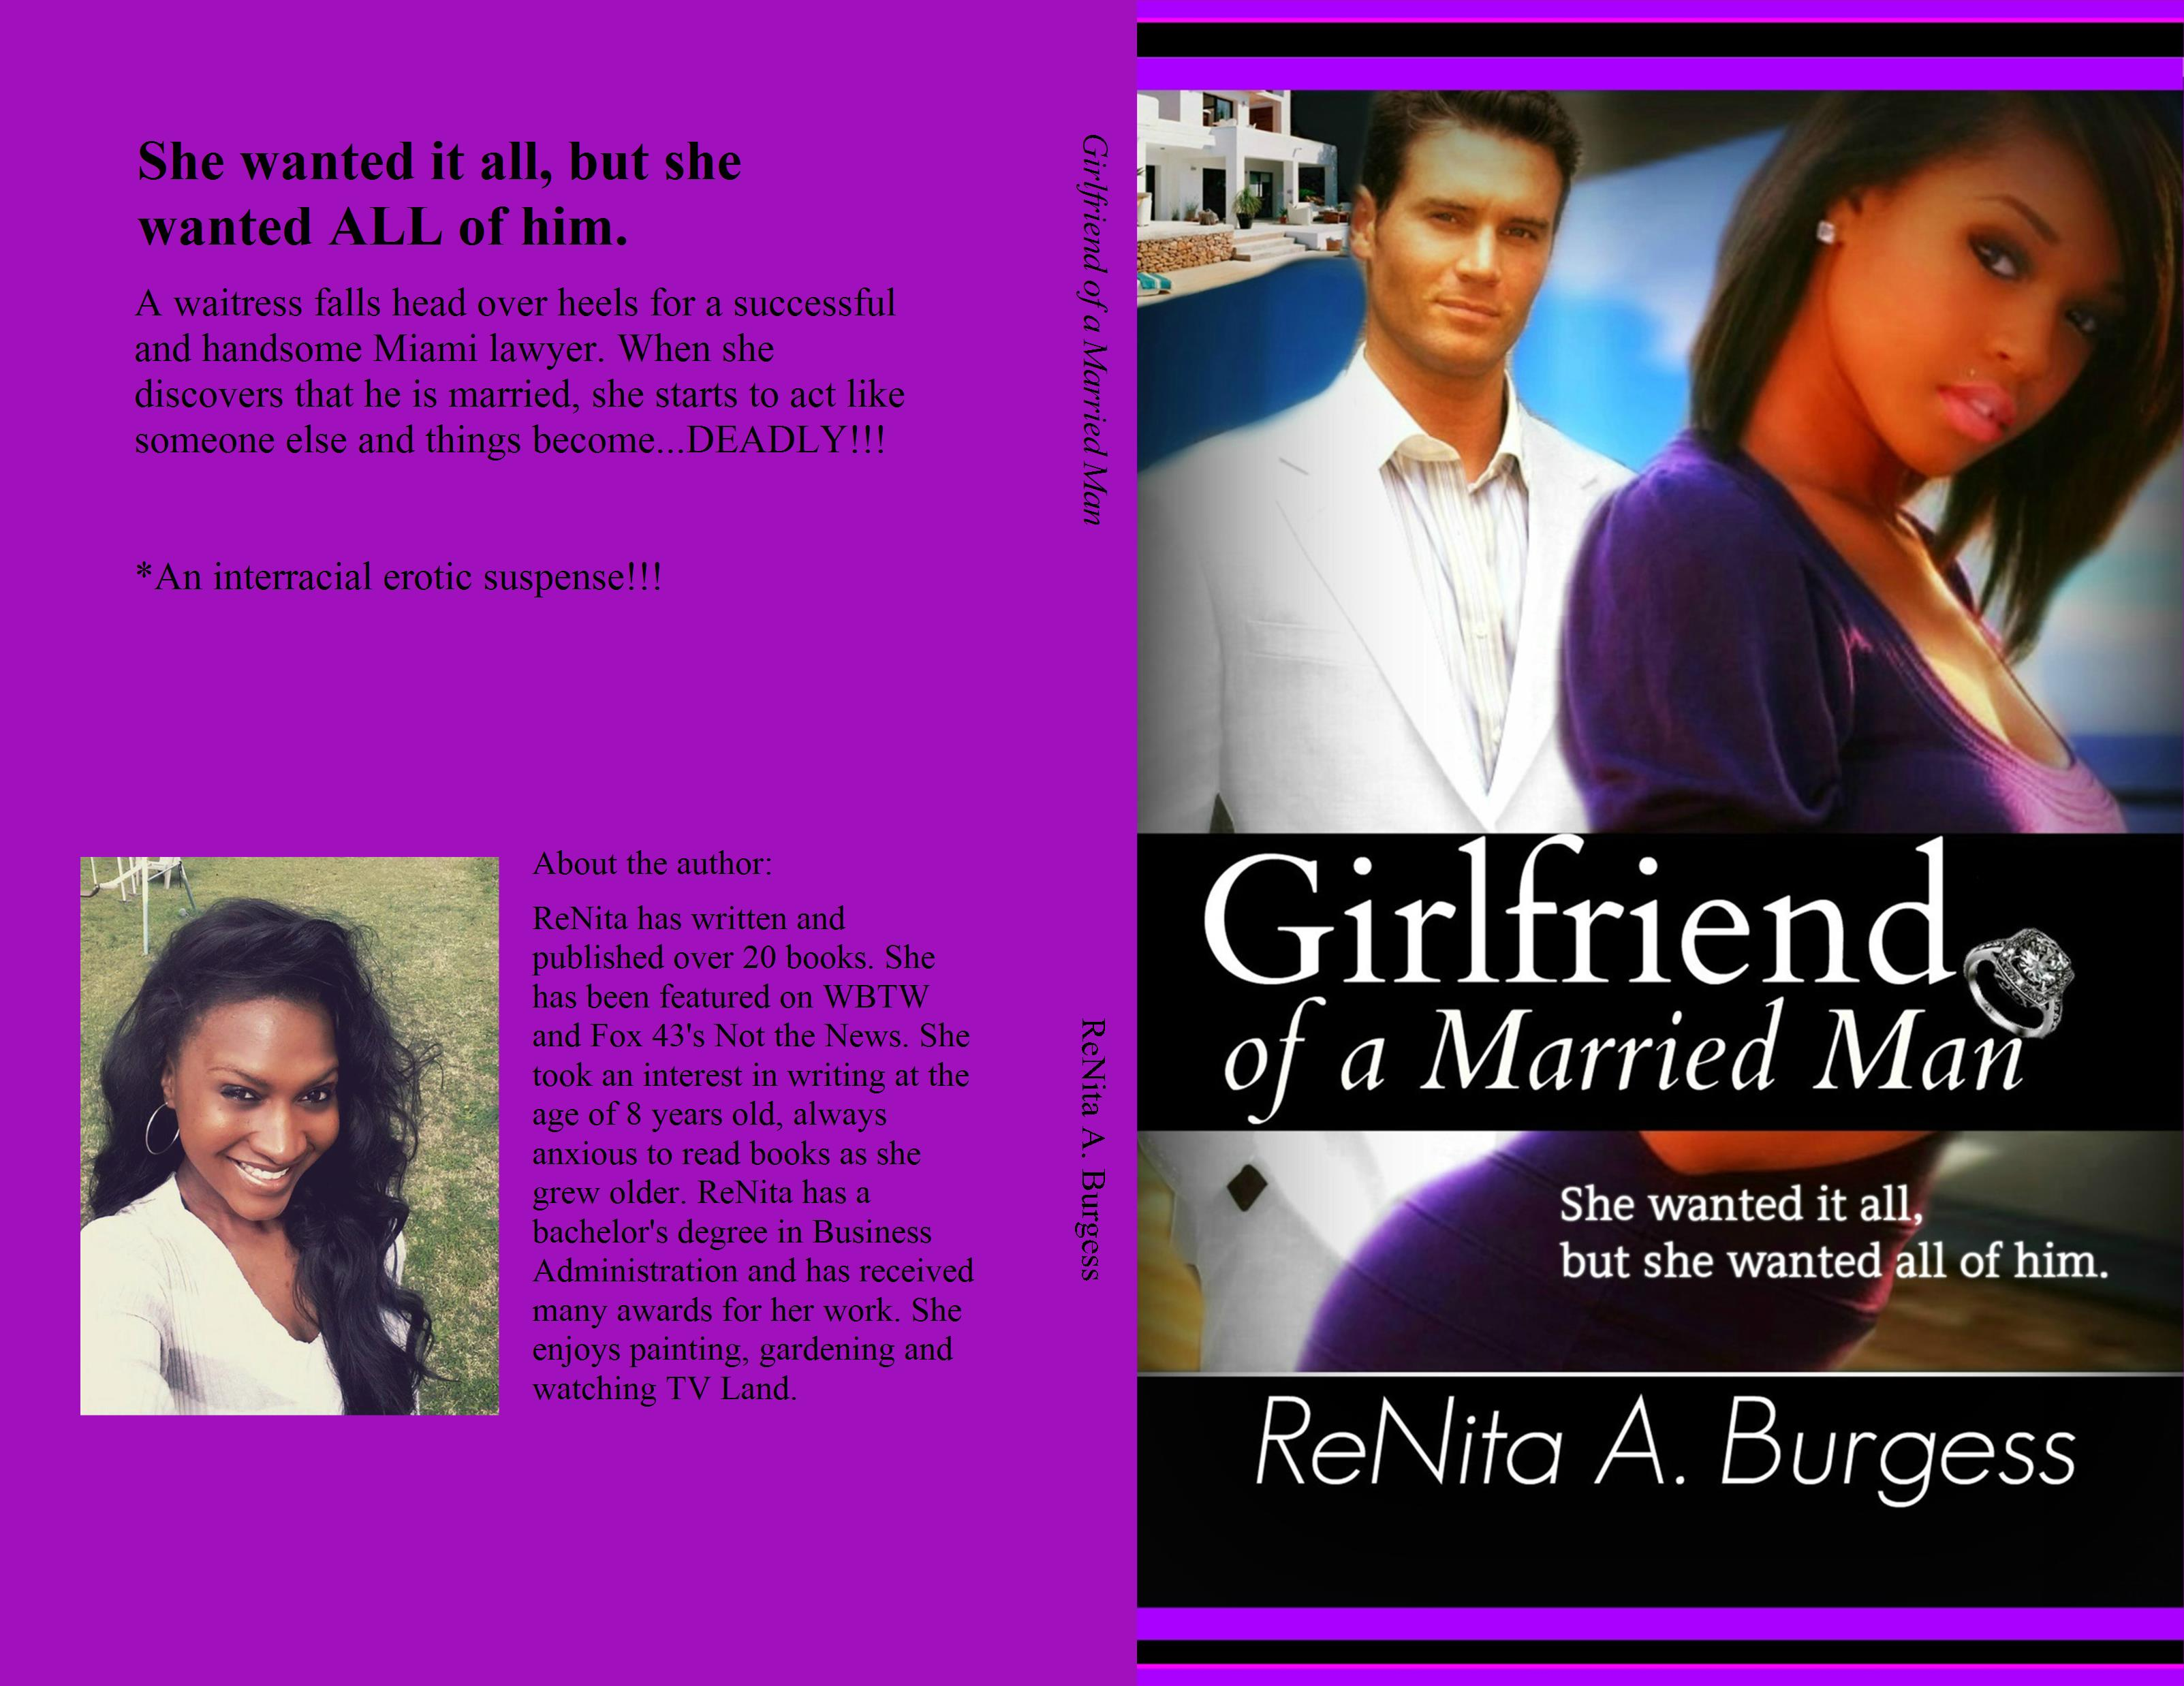 Girlfriend of a Married Man cover image